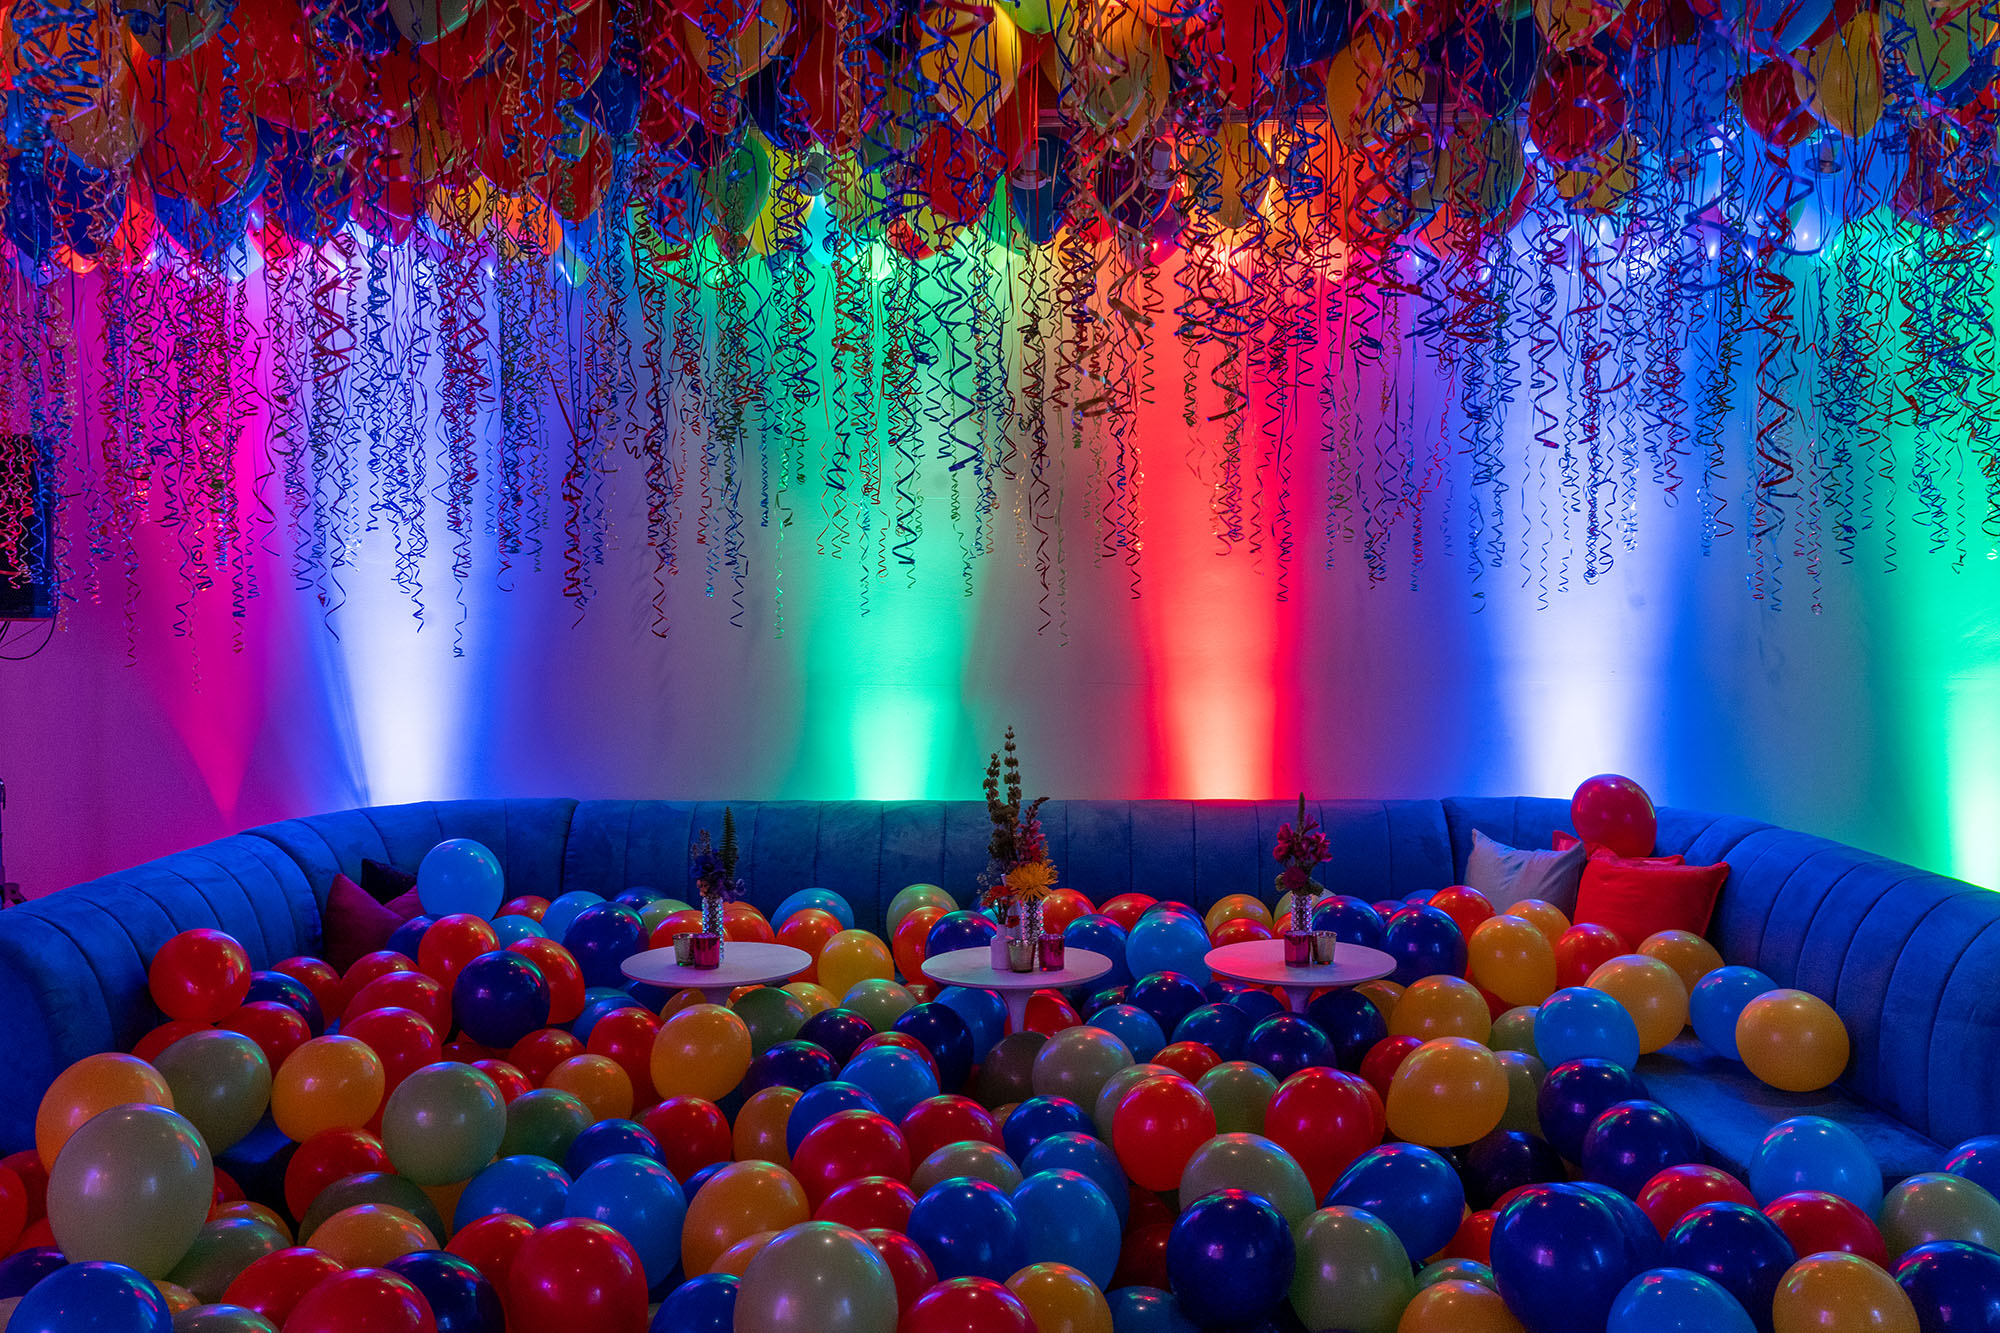 Thousands of balloons